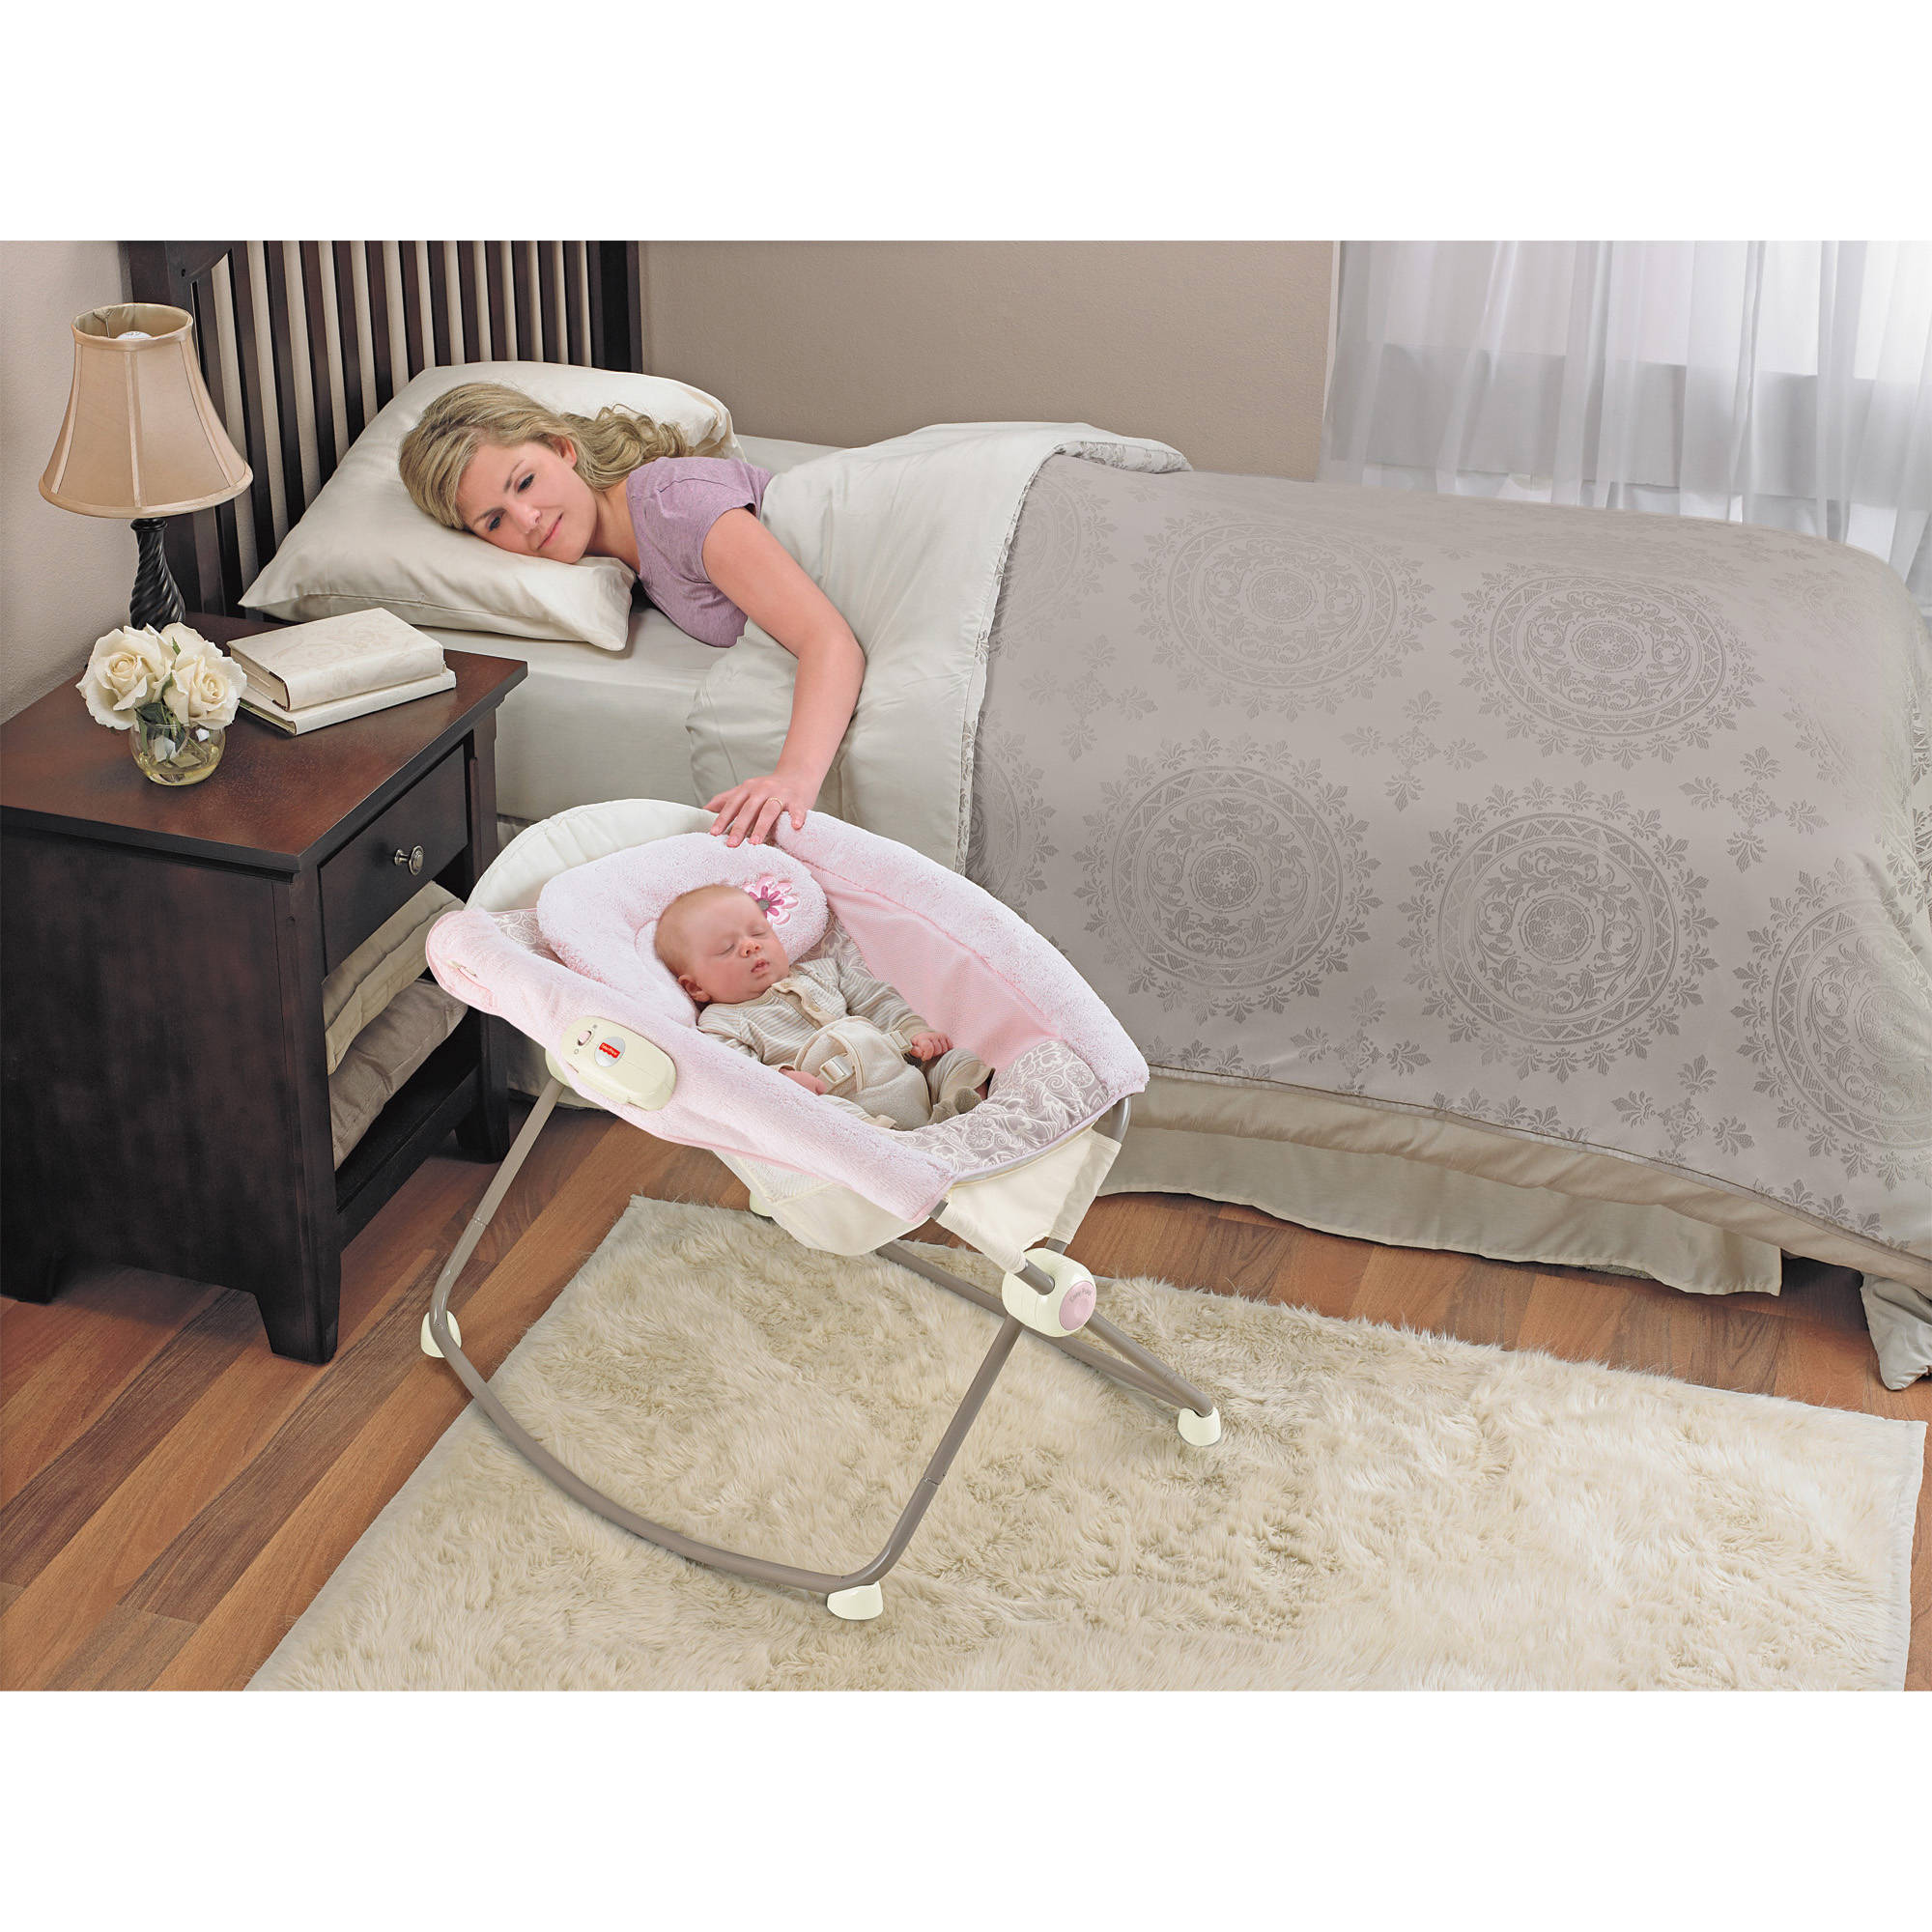 Fisher-Price My Little Sweetie Deluxe Newborn Rock 'n Play Sleeper